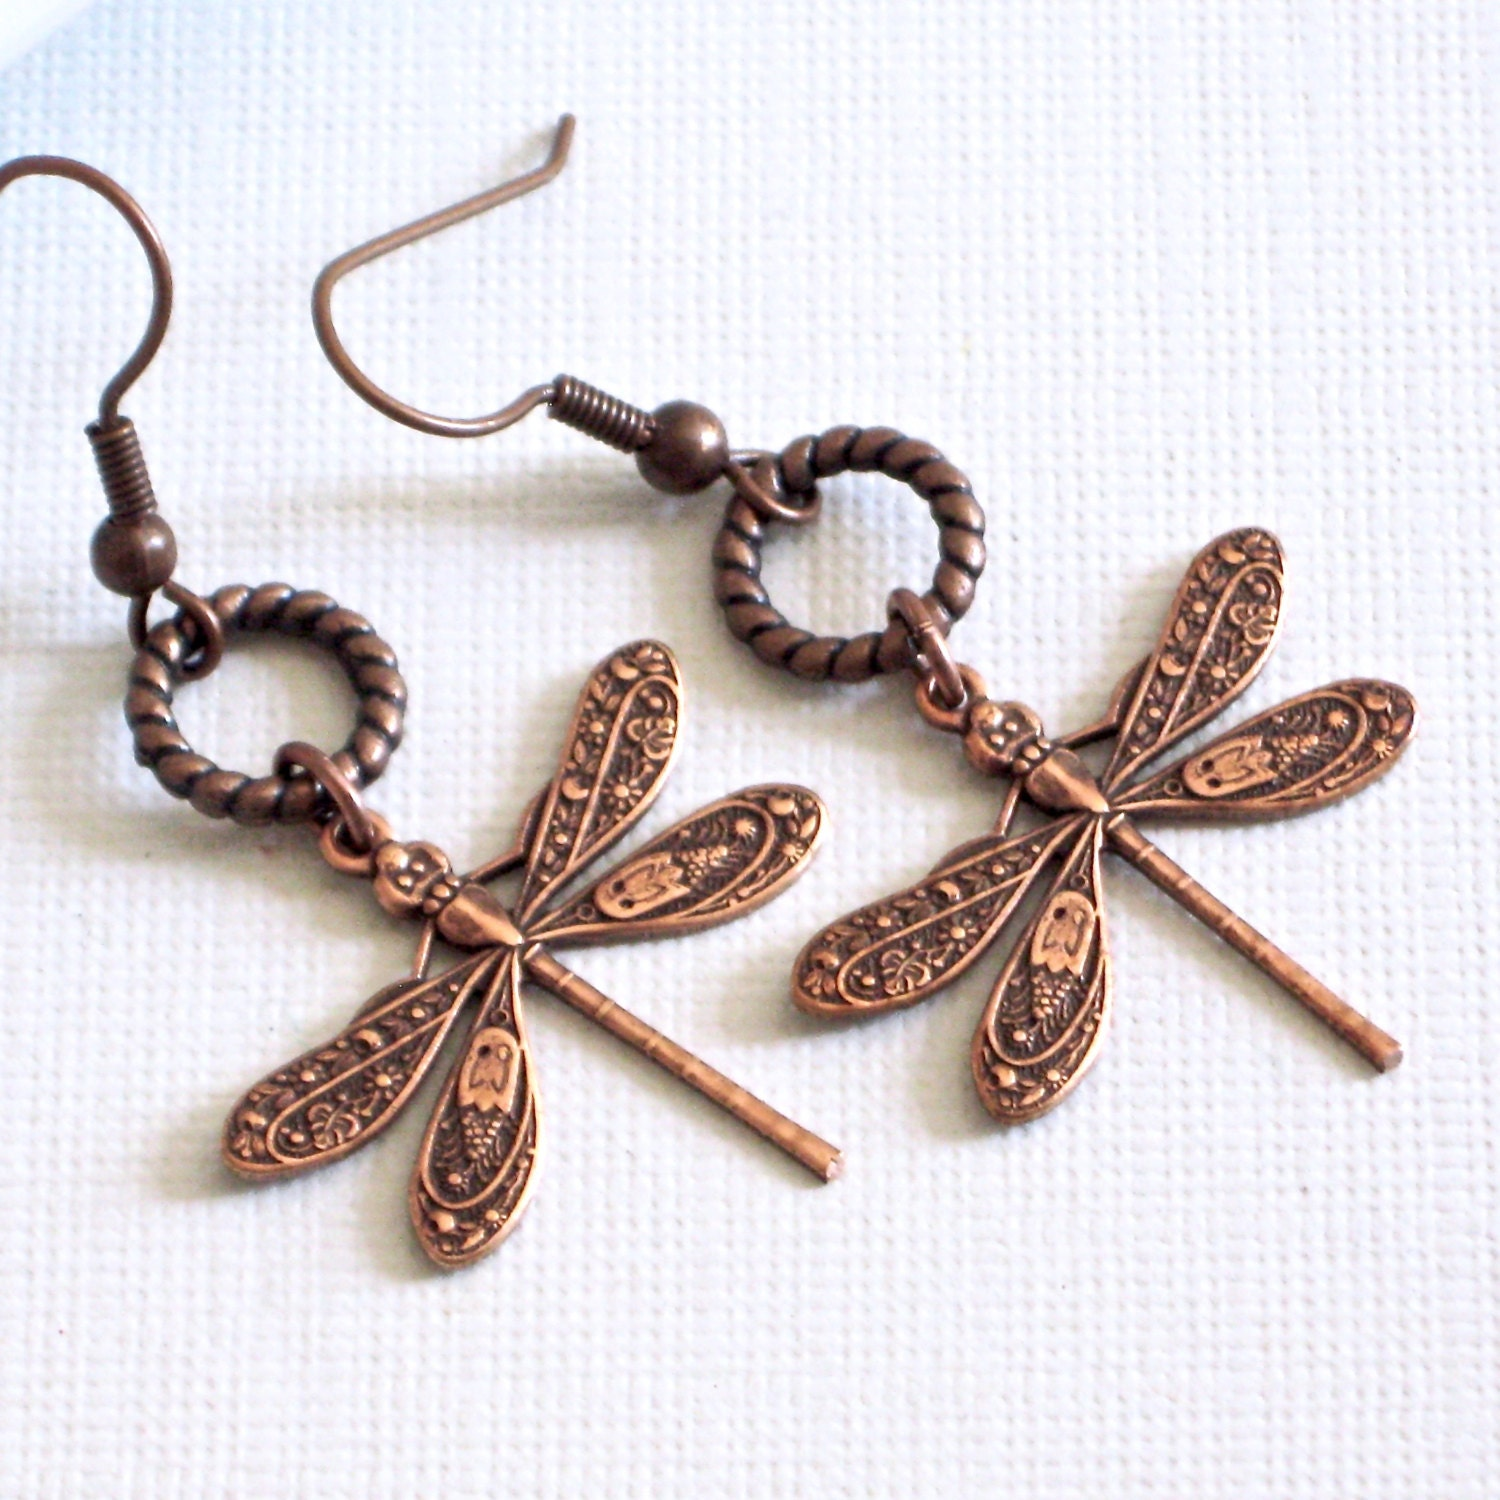 Copper Dragonfly Earrings Dragonfly Jewelry Nature Jewelry